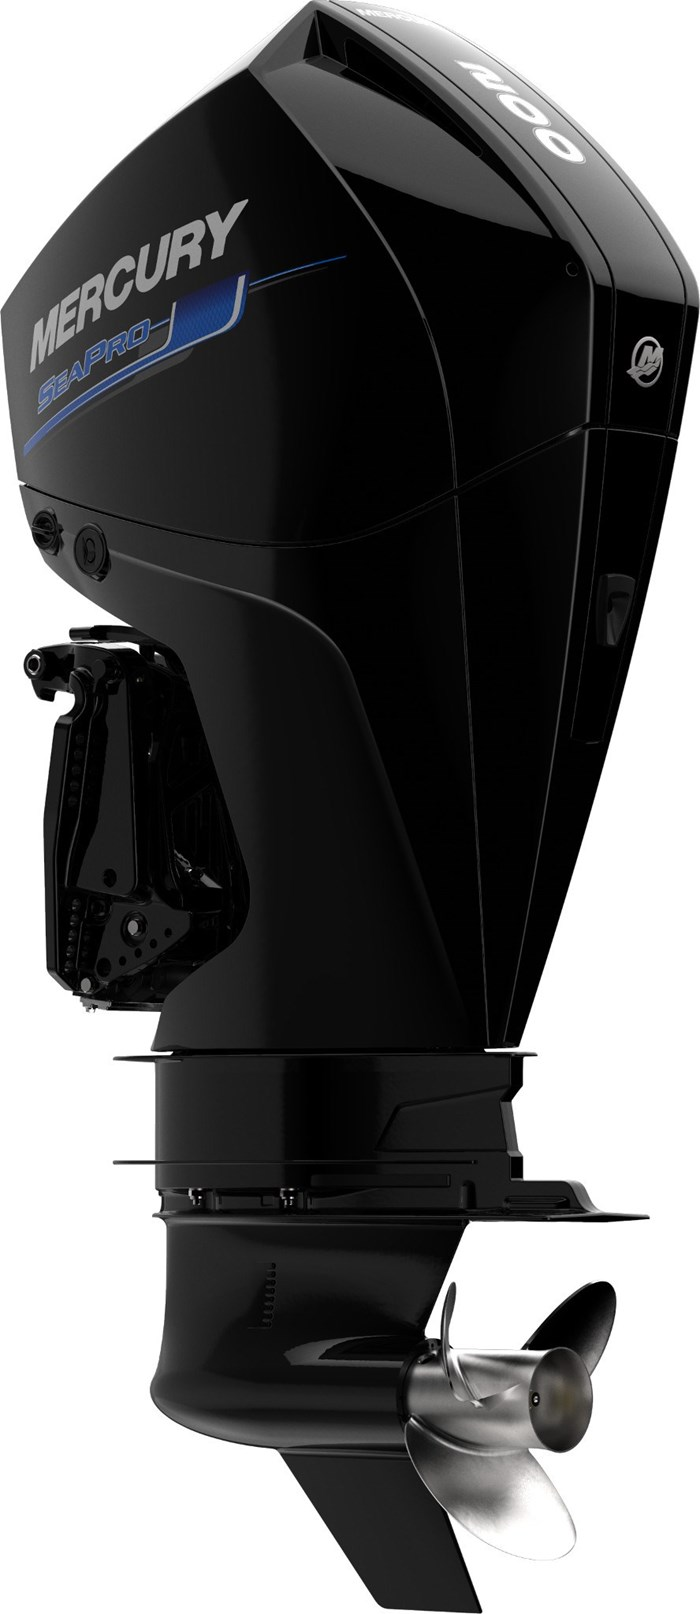 2020 Mercury 200XL V-6 4-Stroke SeaPro DTS Commercial Outboard Photo 6 of 27